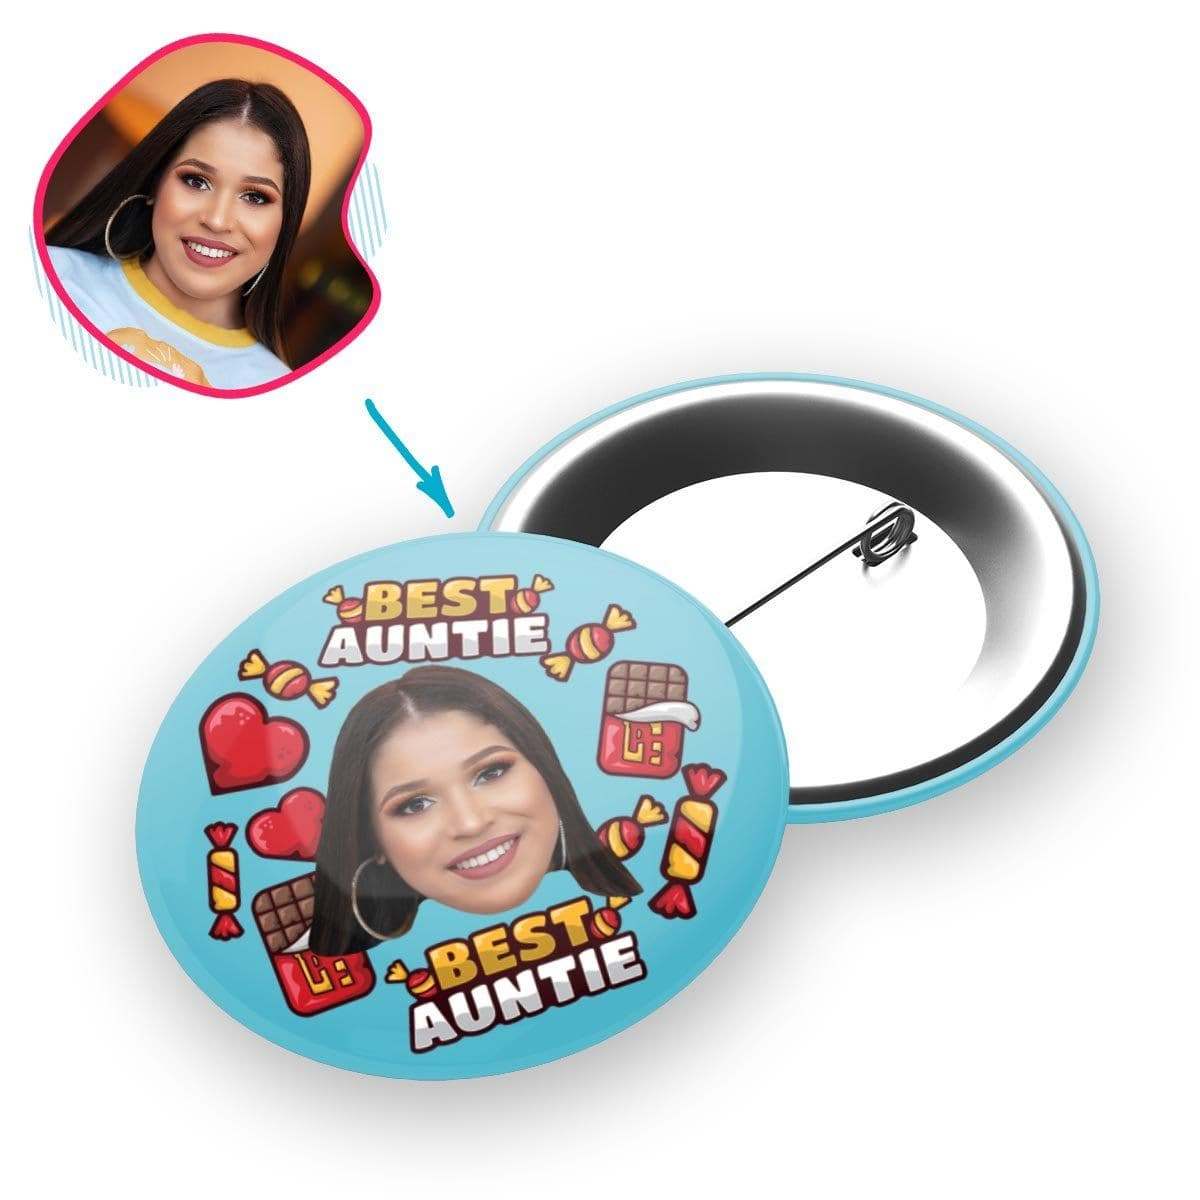 Blue Auntie personalized pin with photo of face printed on it